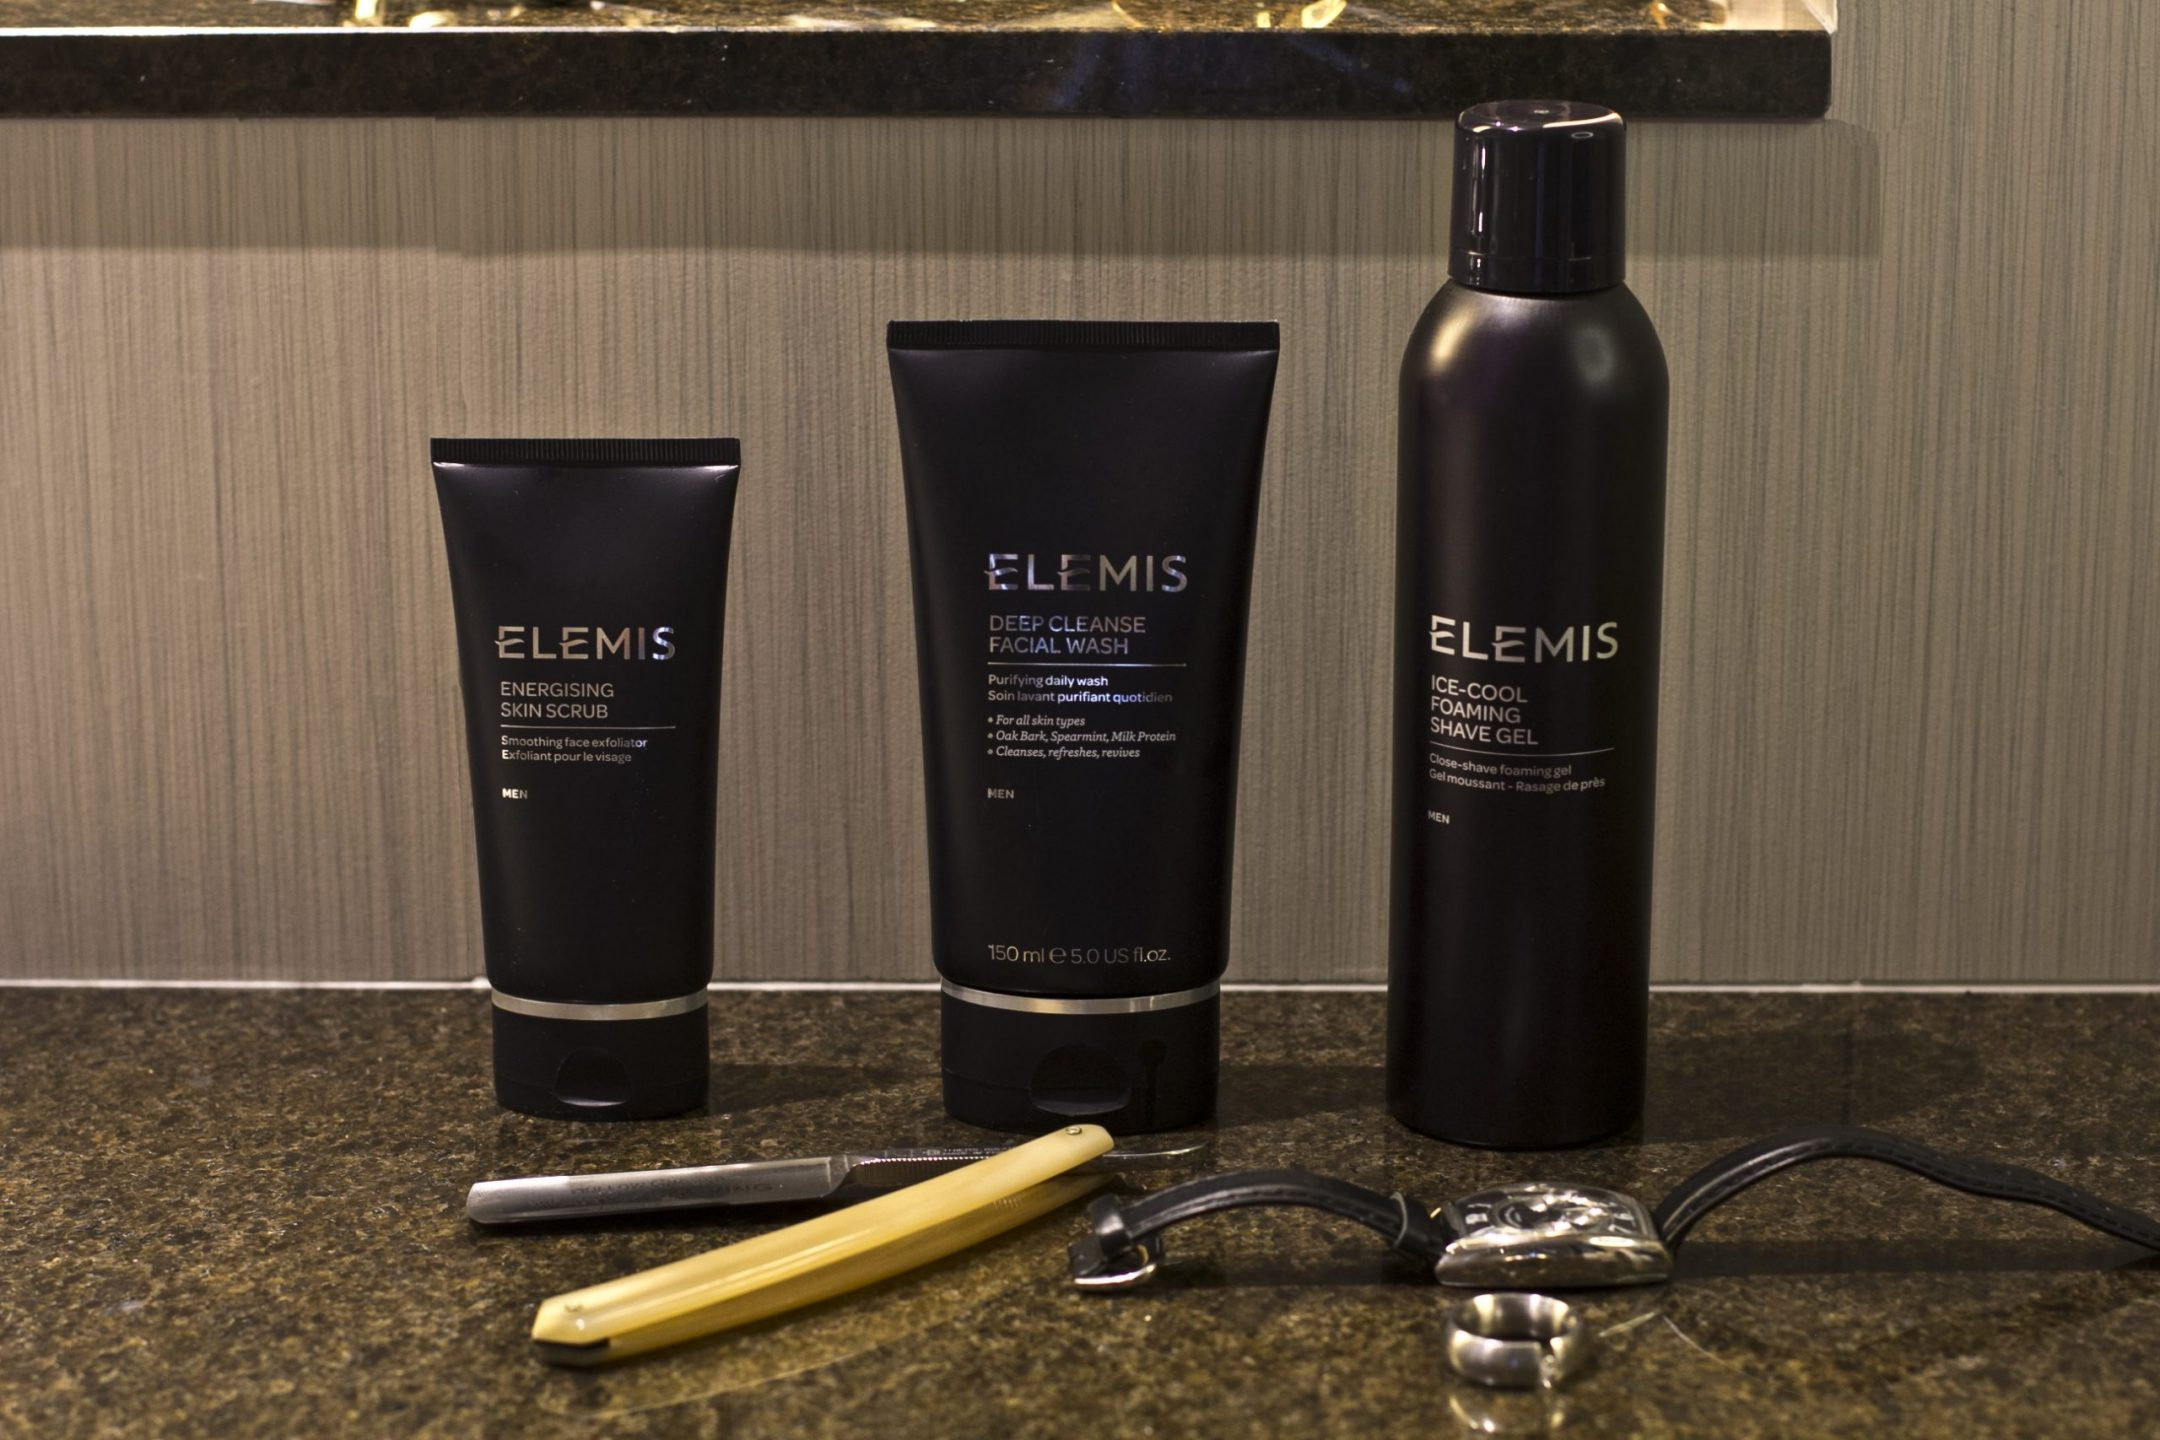 My 10 Favorite Men's Beauty Products